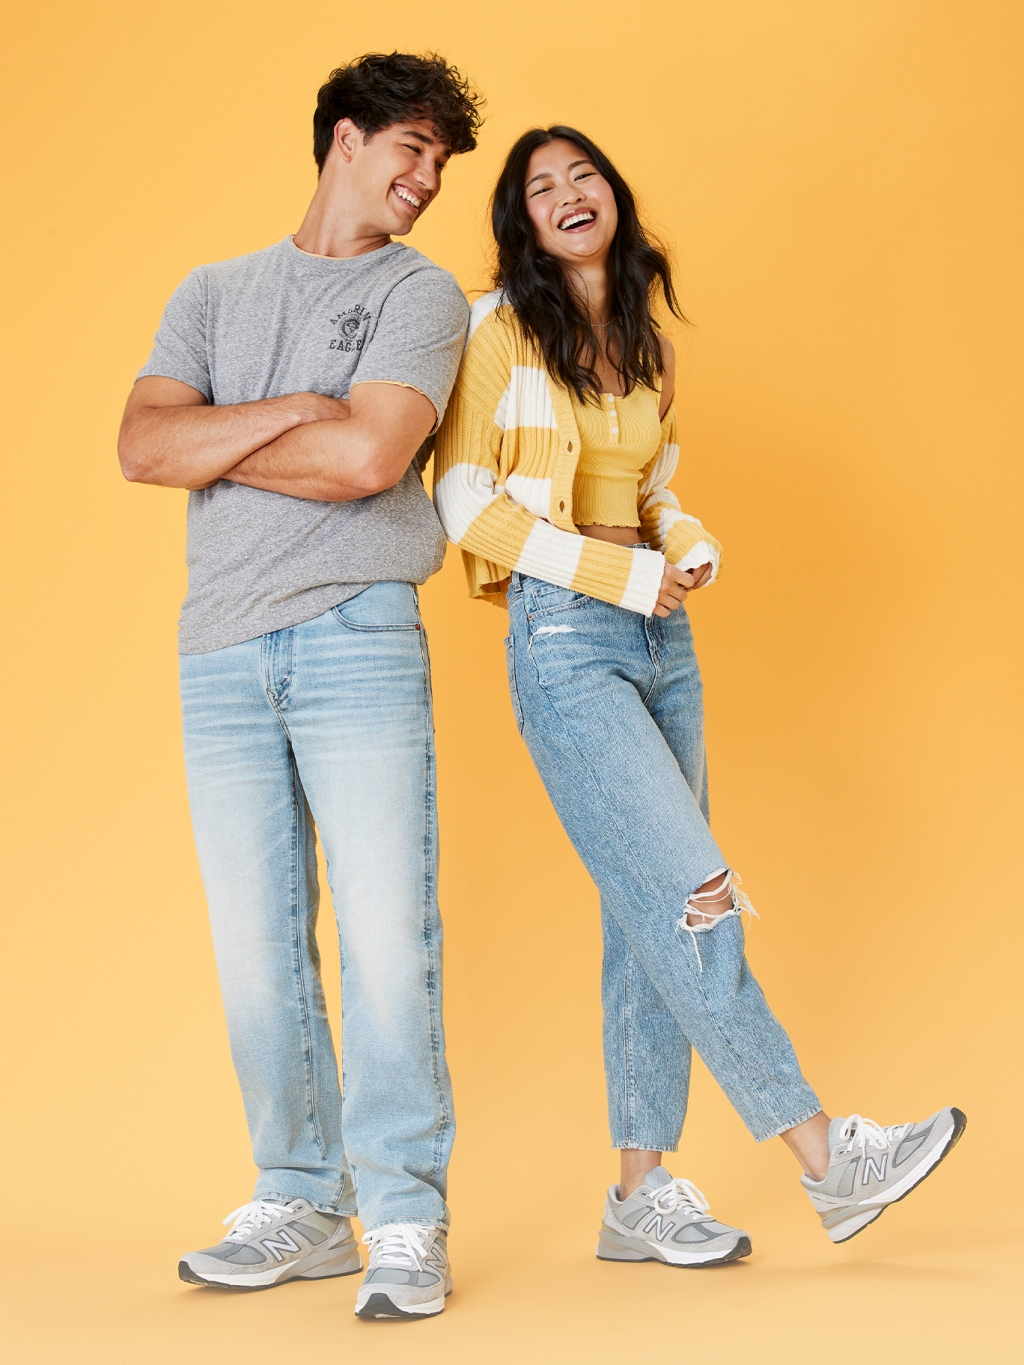 man and woman wearing light wash jeans